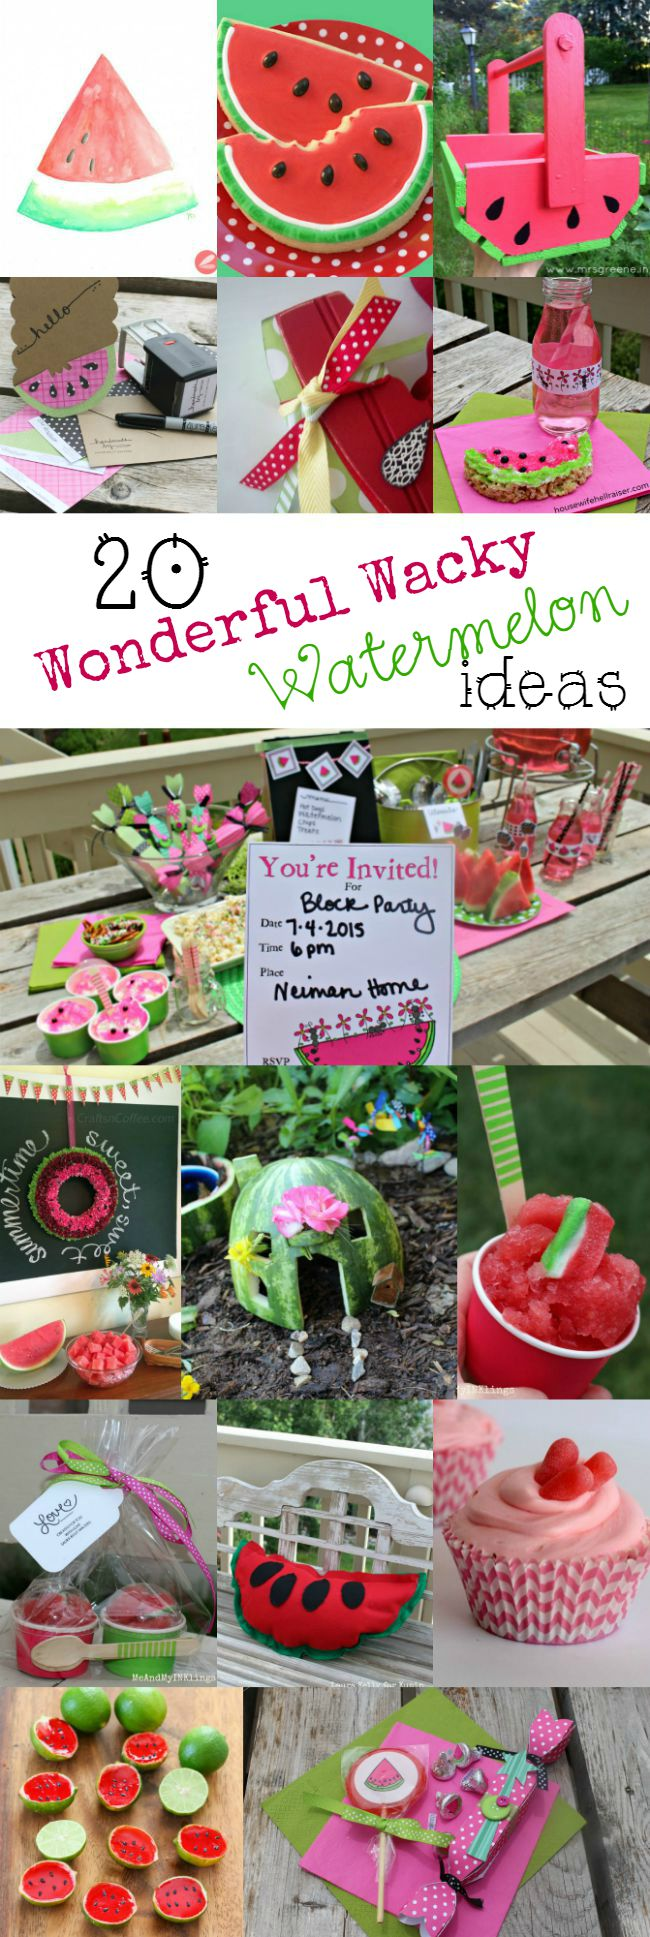 20 Wonderful Watermelon Crafts and Recipes at www.happyhourprojects.com